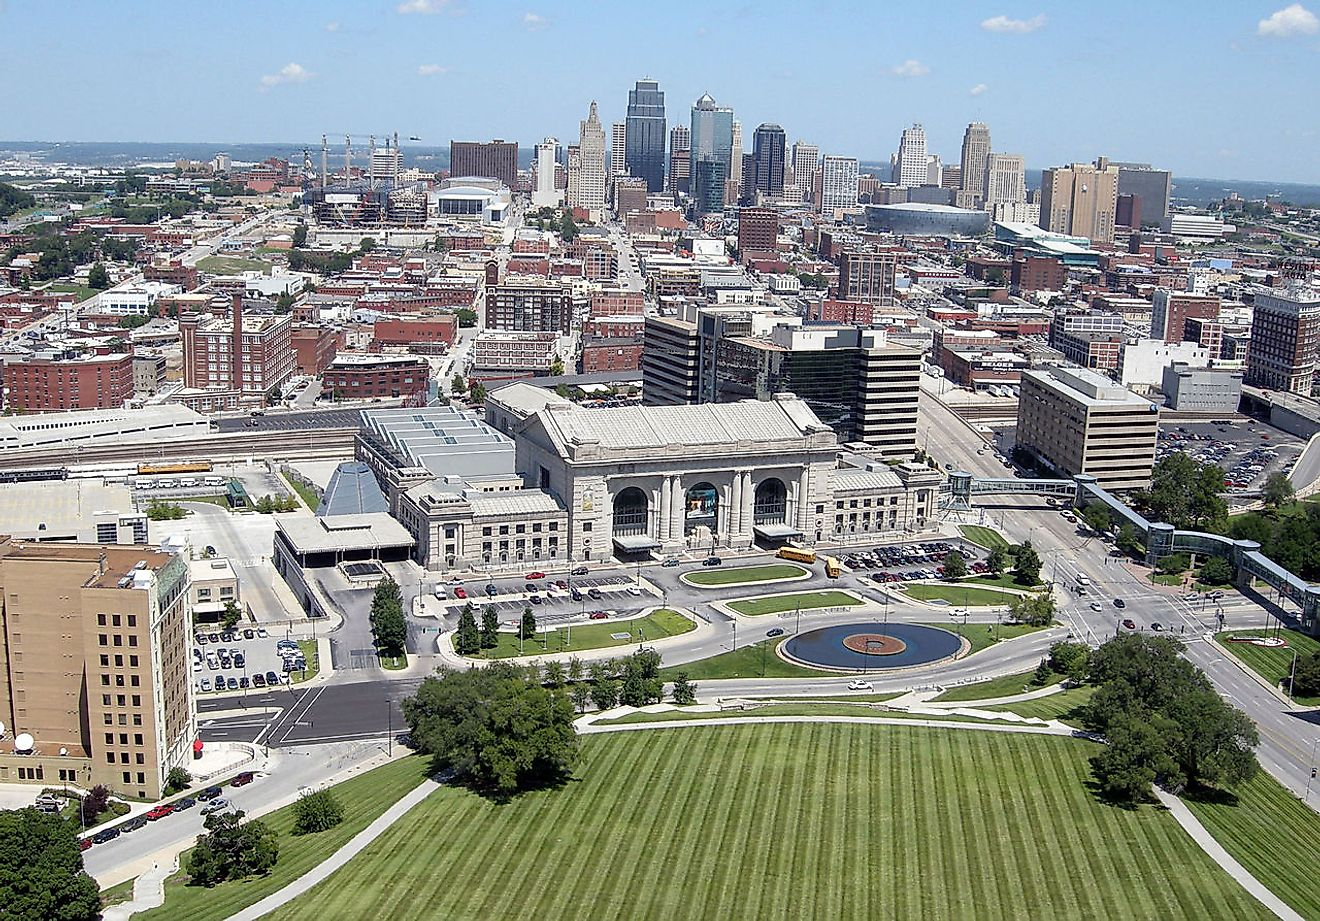 Kansas City, Missouri. Image credit: Brian Hillega/Wikimedia Commons.